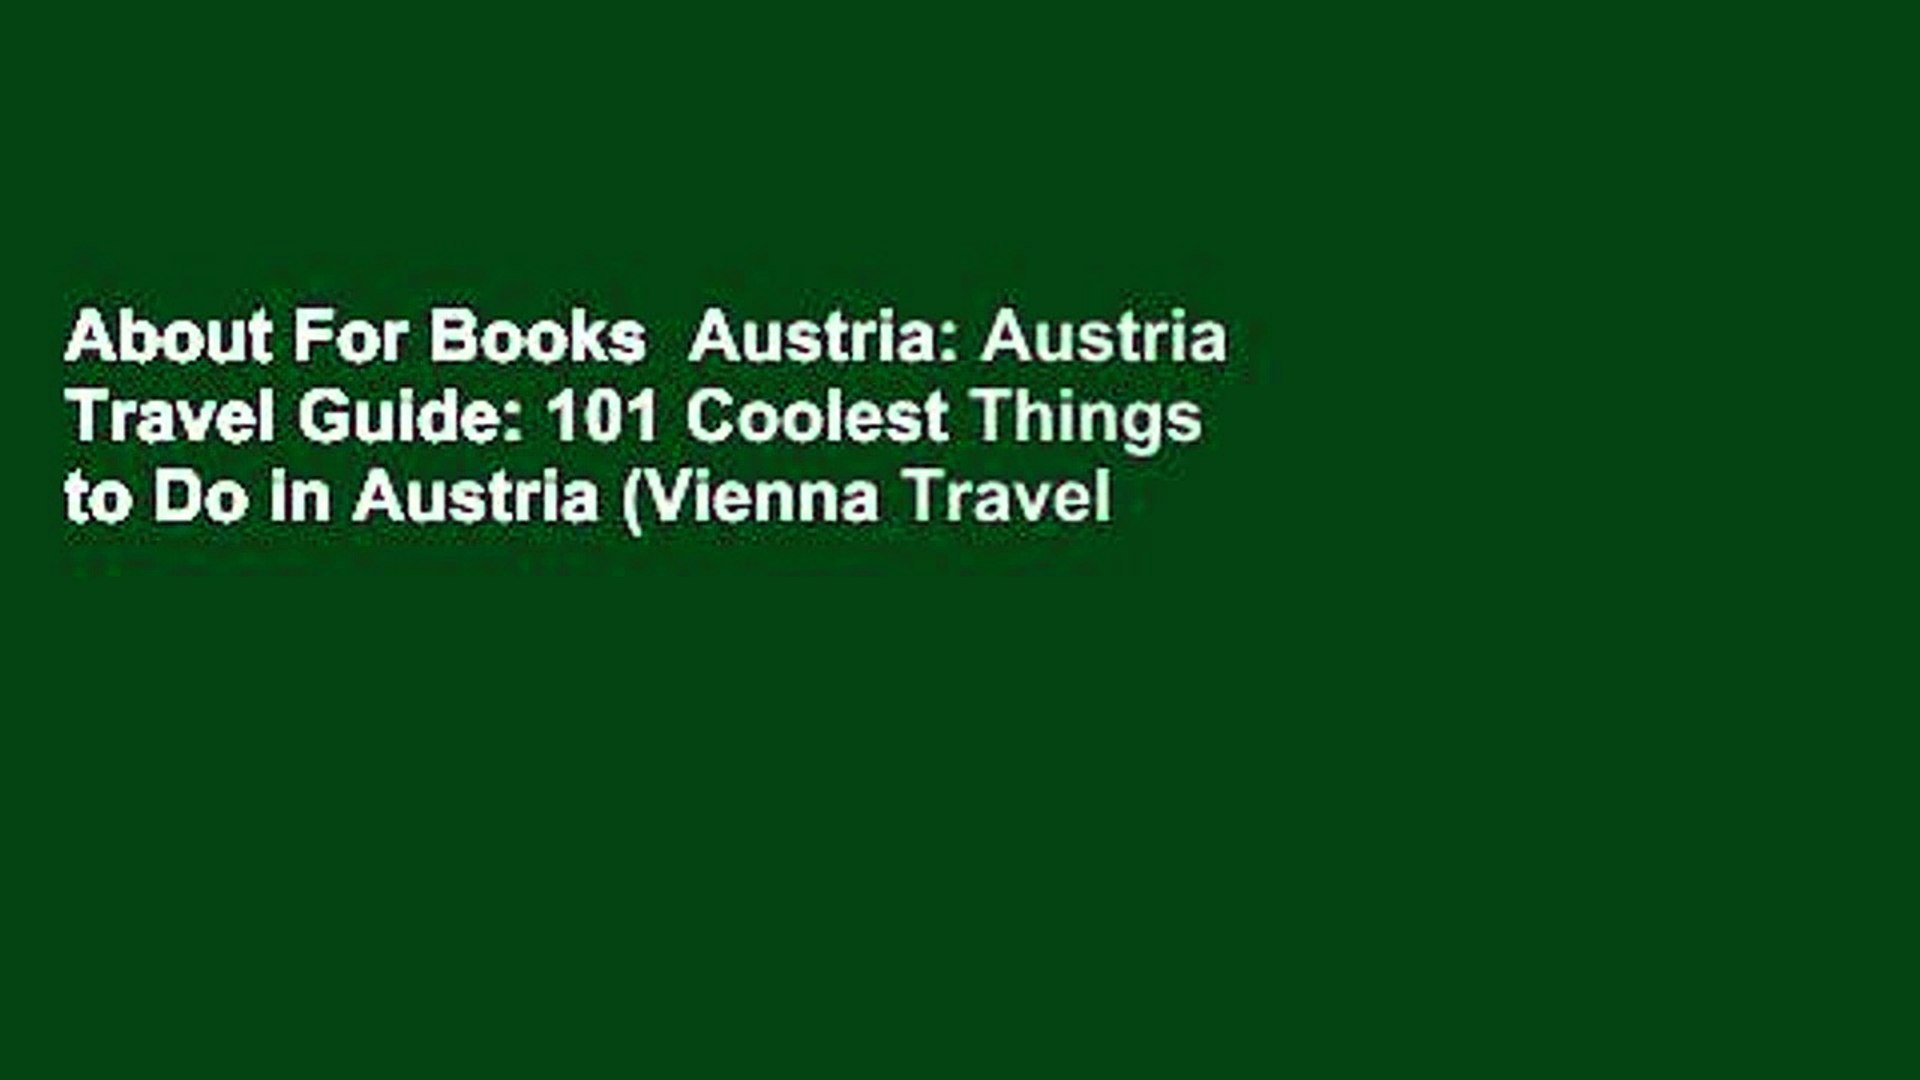 About For Books  Austria: Austria Travel Guide: 101 Coolest Things to Do in Austria (Vienna Travel